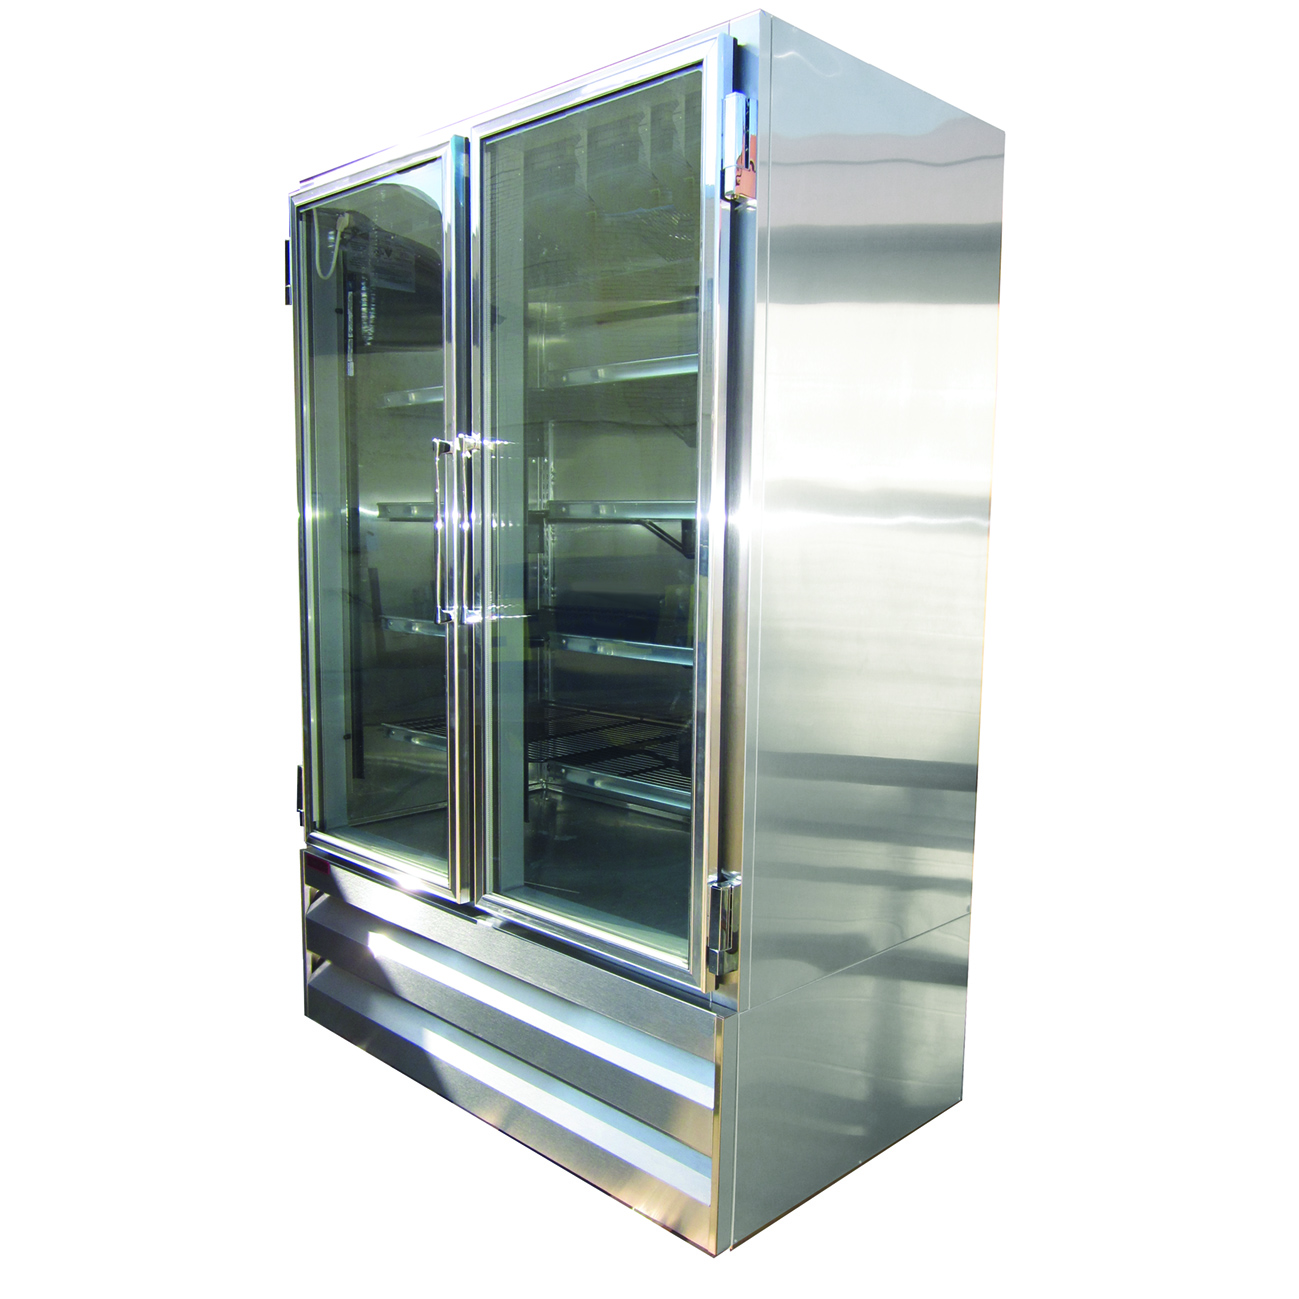 Howard-McCray GF42BM-S-LT freezer, merchandiser